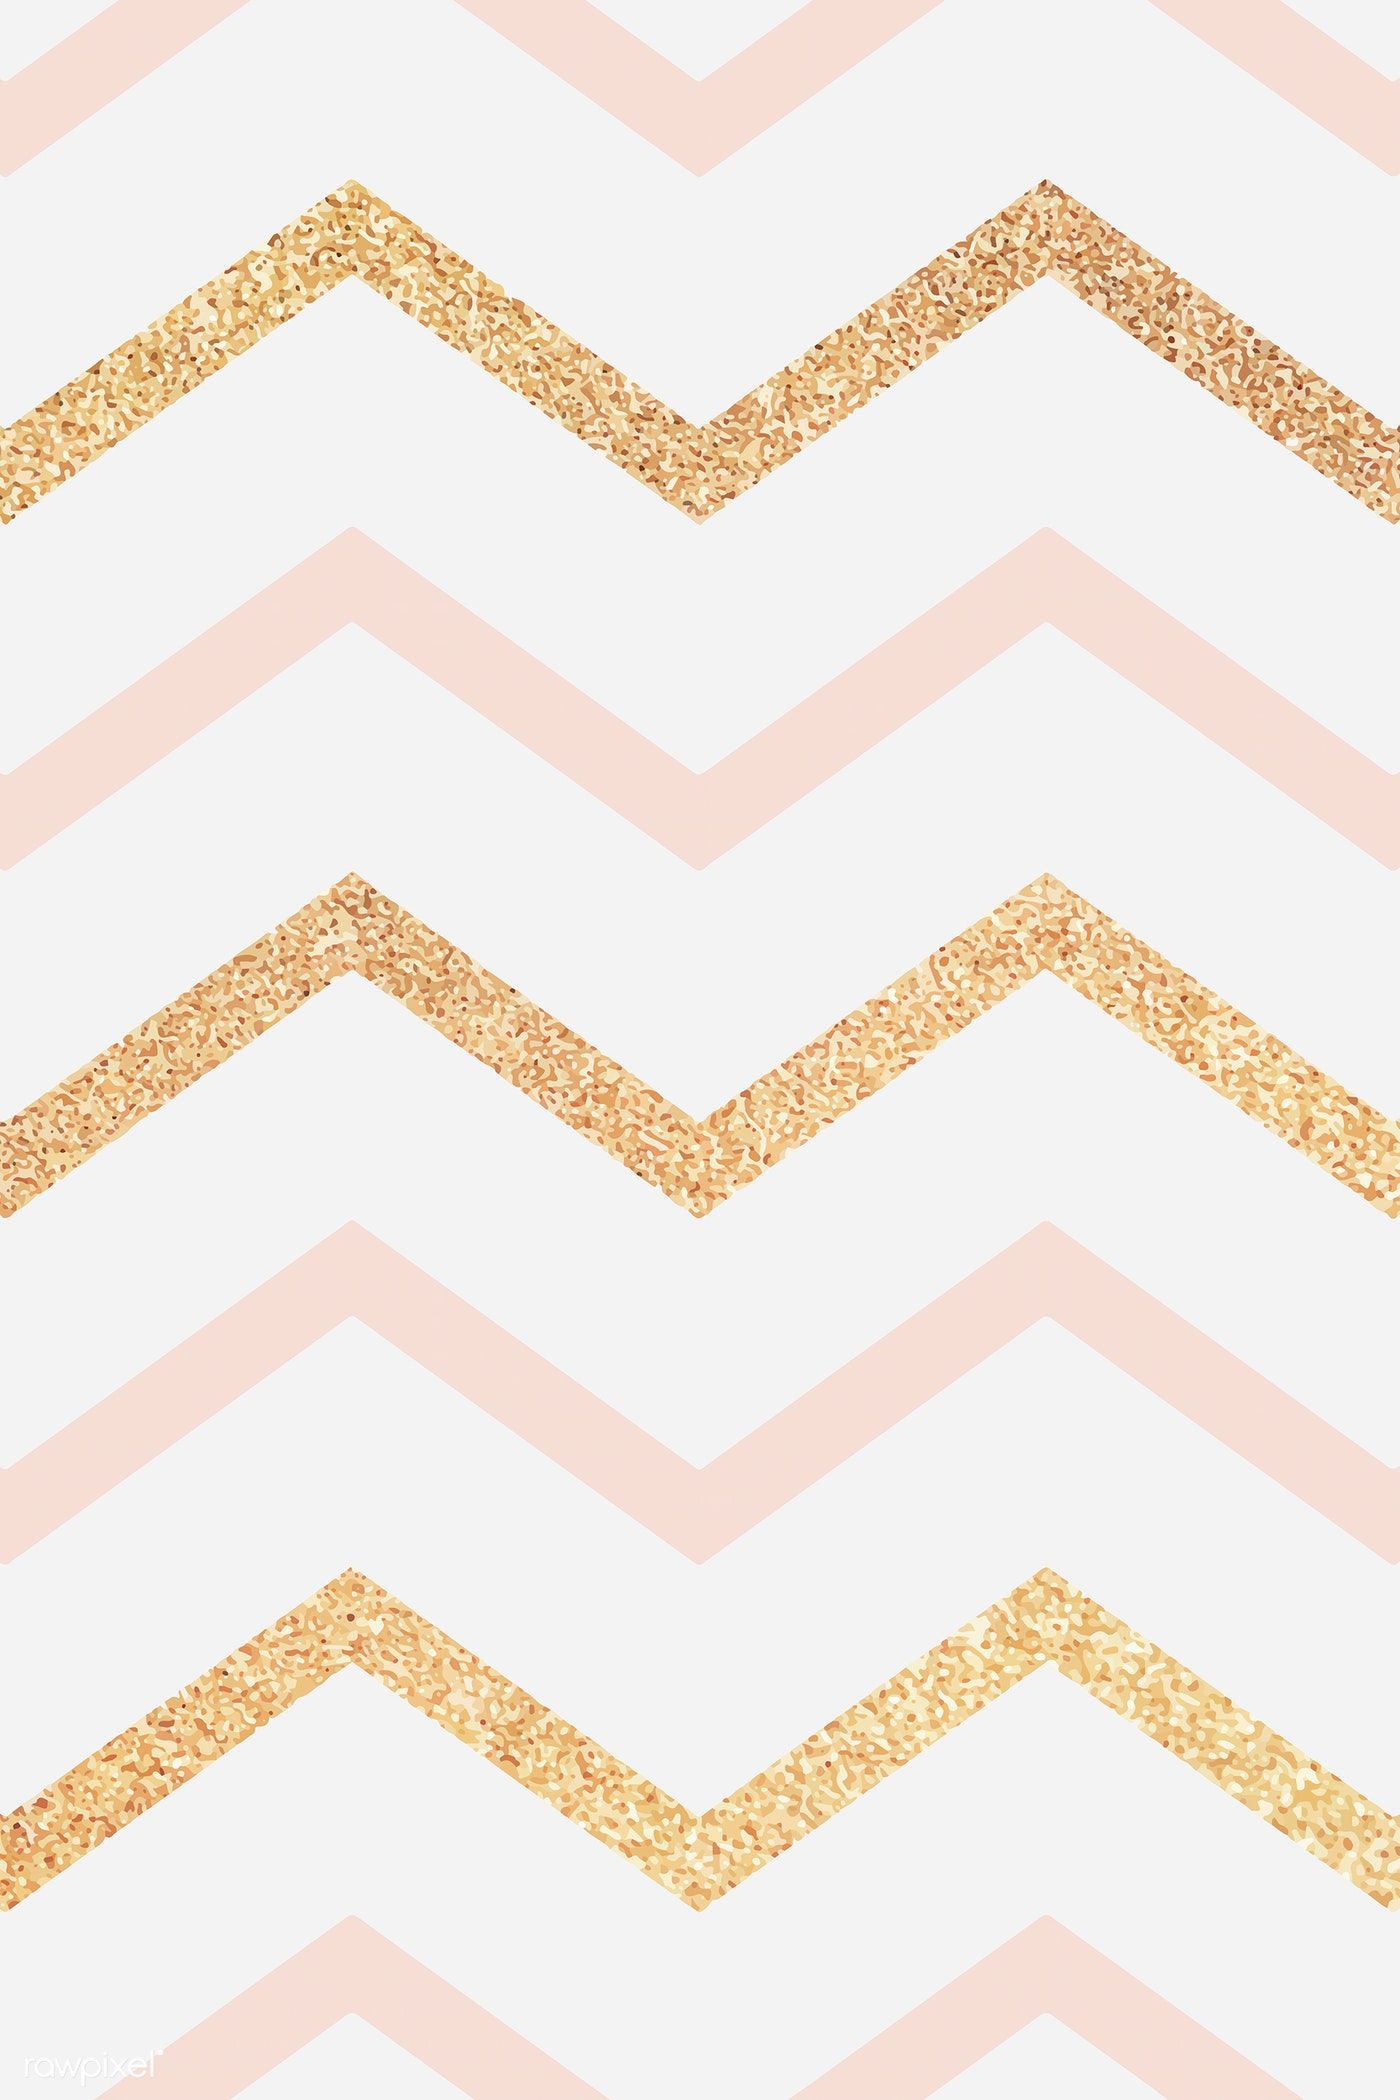 Download Premium Vector Of Pink And Gold Glittery Zigzag Patterned Gold Wallpaper Background Cute Patterns Wallpaper Background Patterns